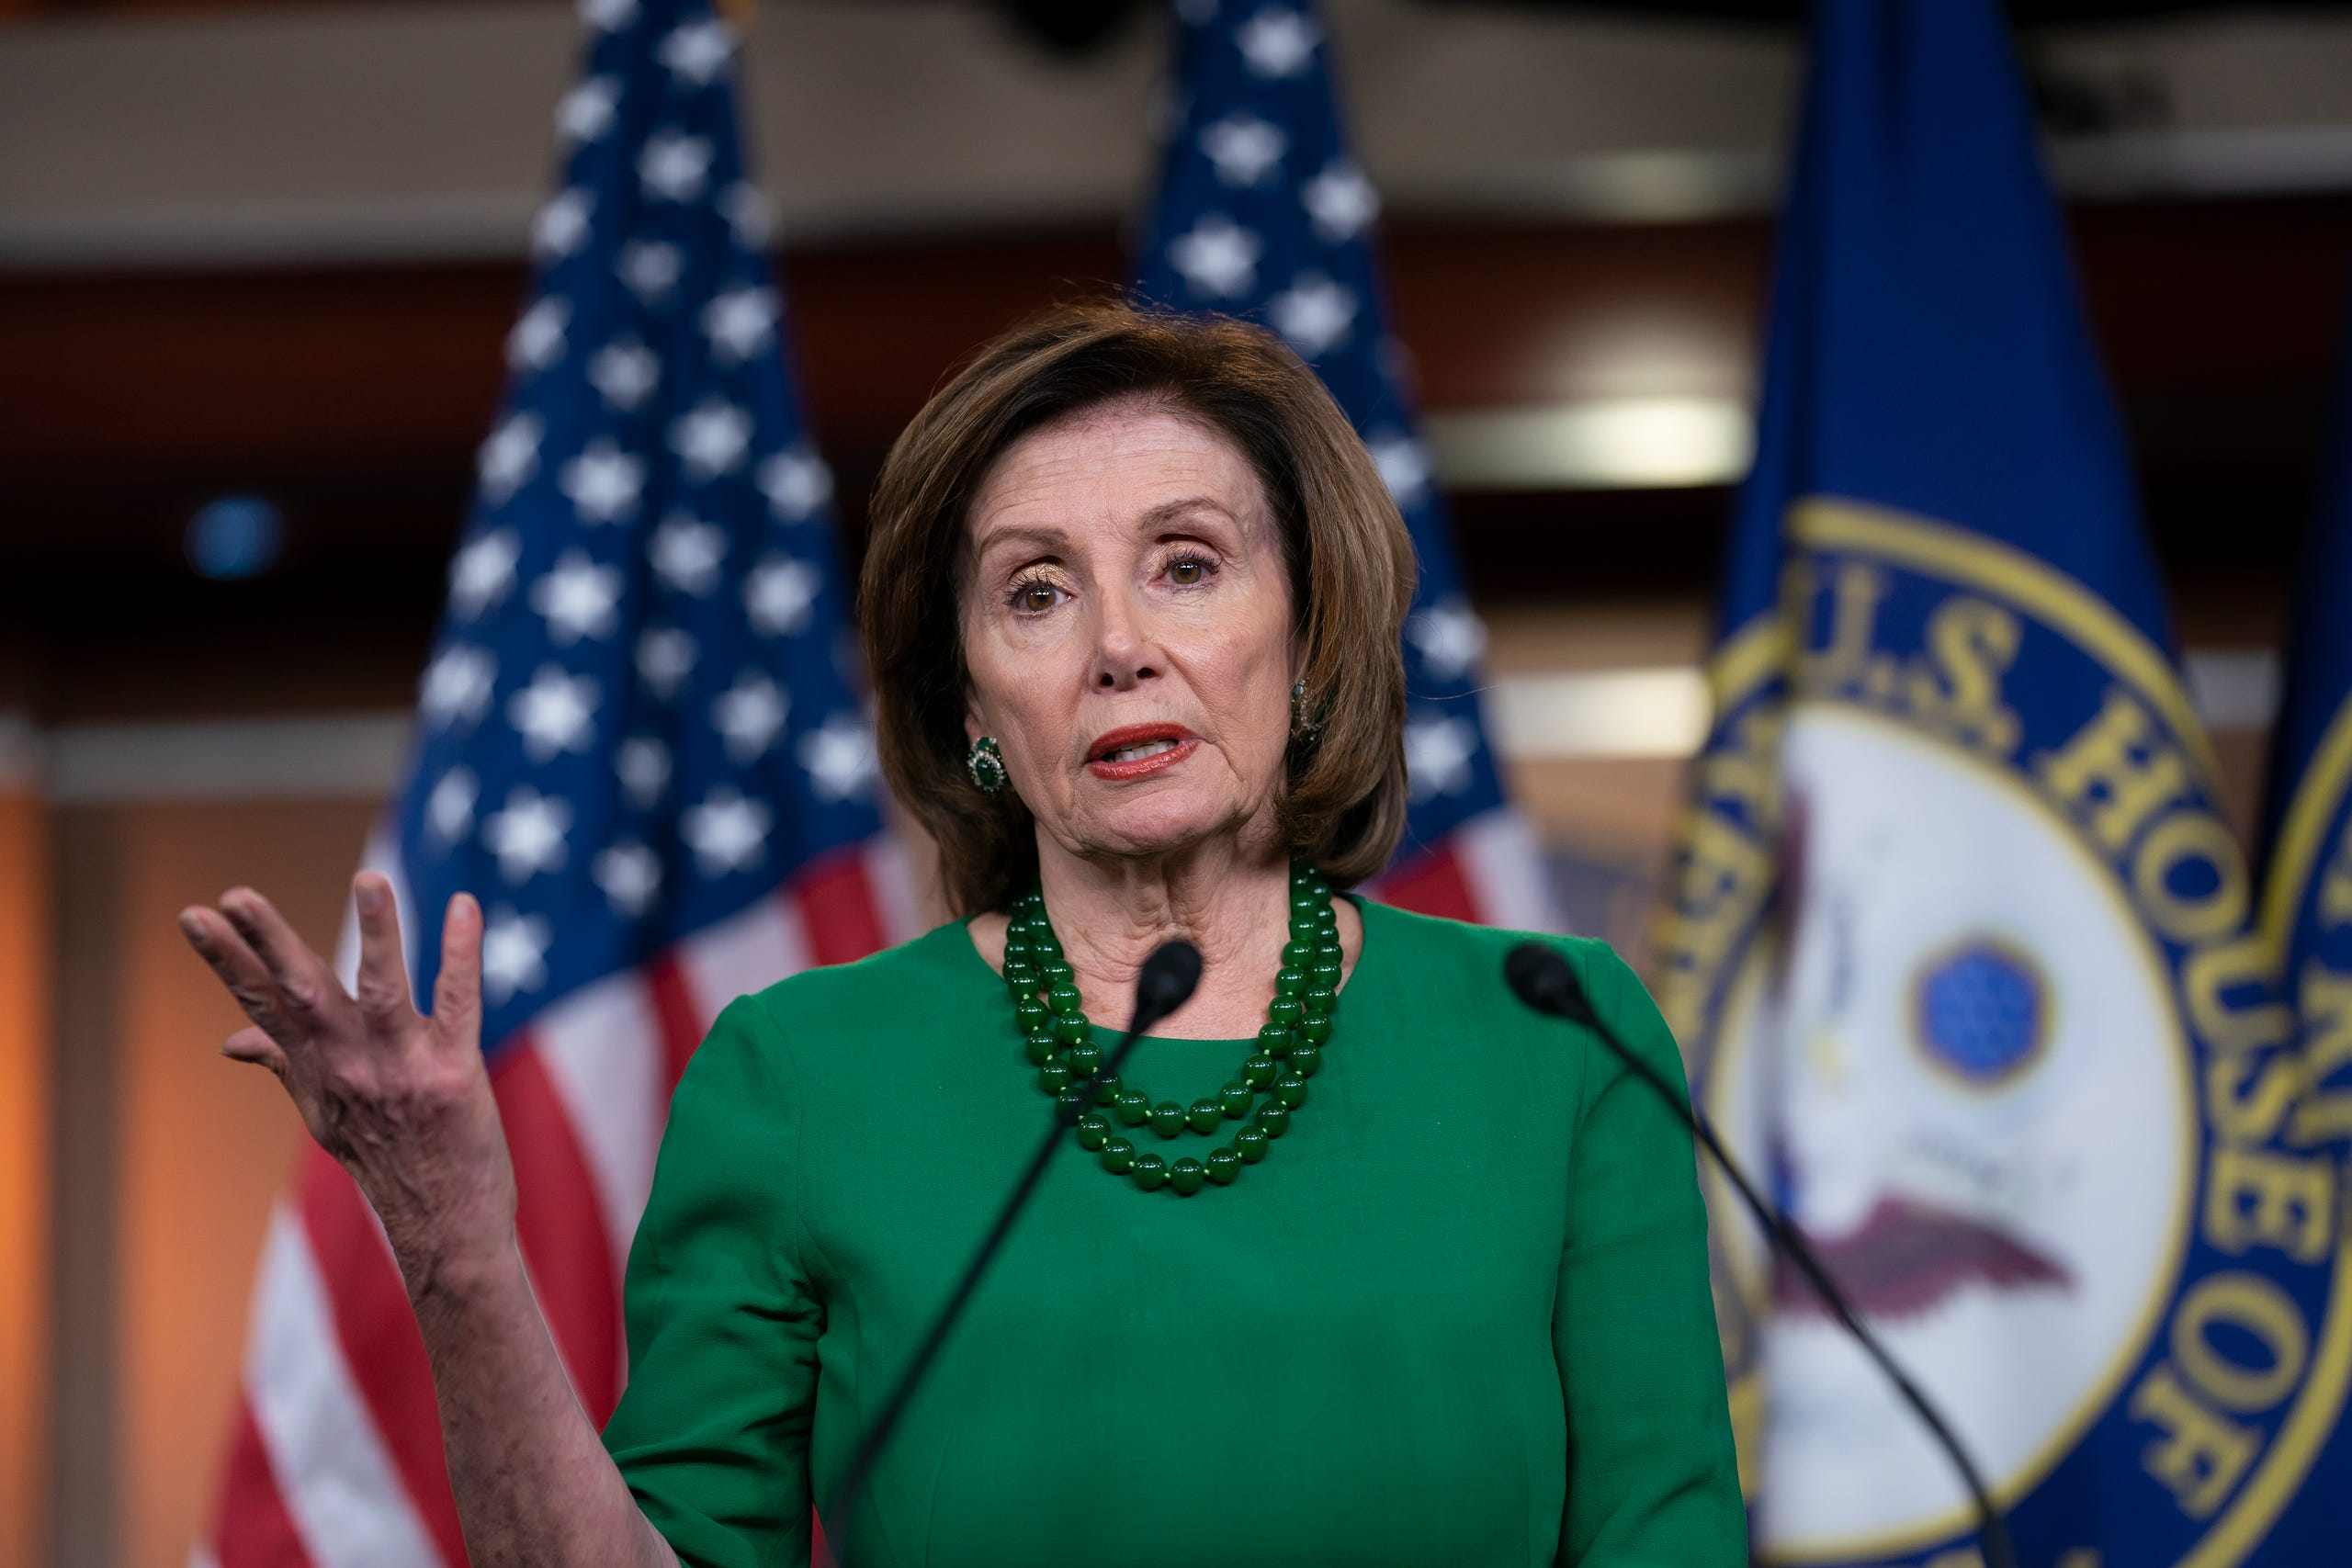 House Speaker Nancy Pelosi, D-Calif., updates reporters as lawmakers worked on a coronavirus aid package in Washington on Thursday.